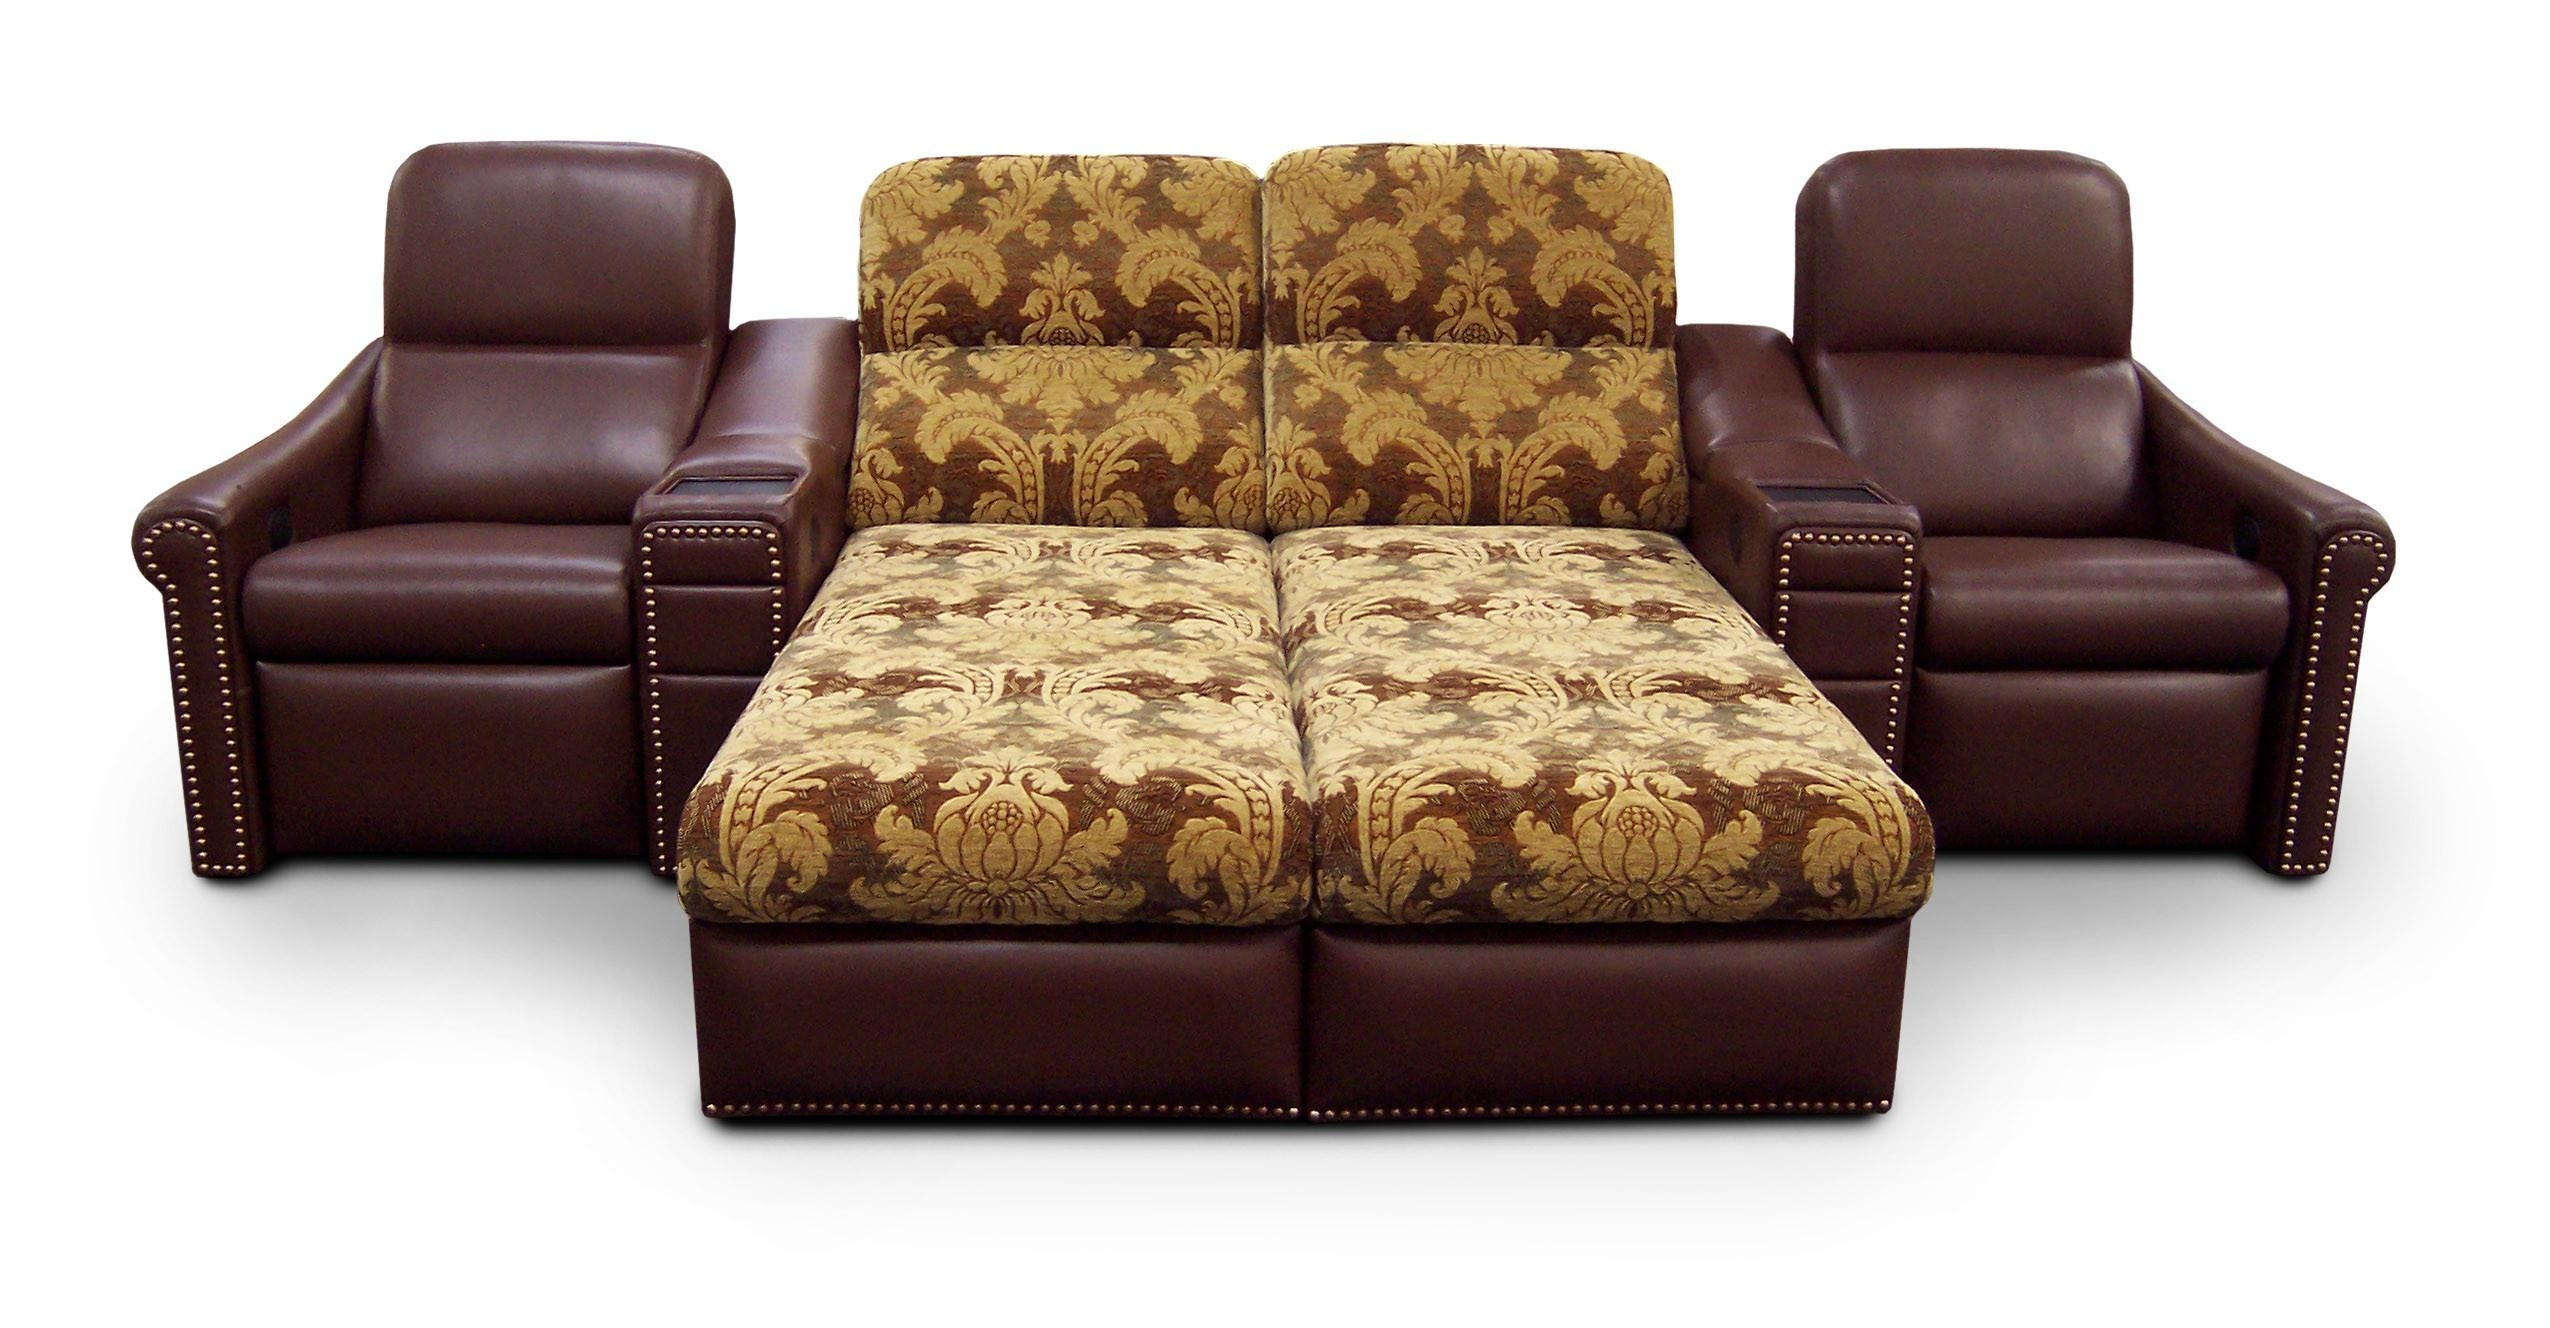 20 Collection Of Chaise Sofa Chairs Sofa Ideas